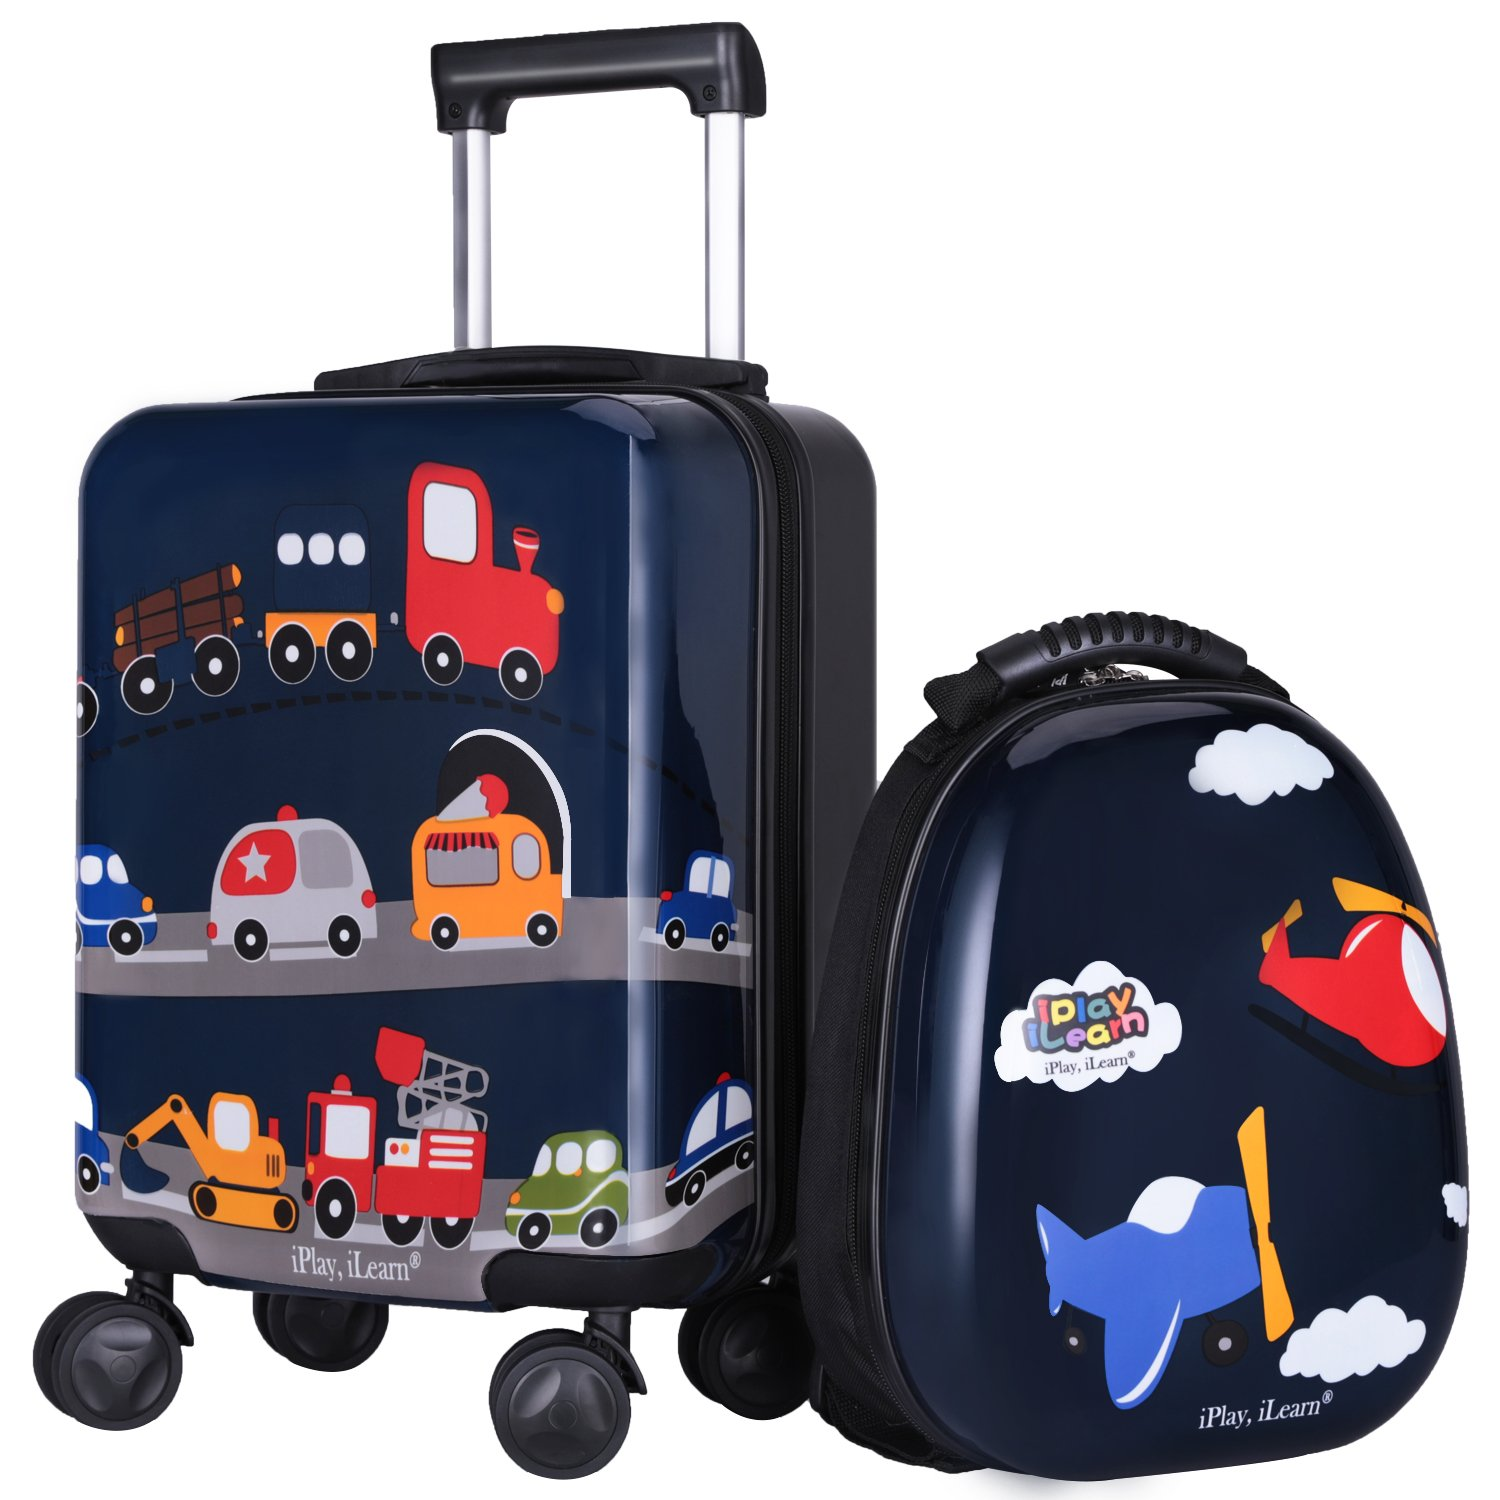 iPlay, iLearn Kids Luggage Set 18'' Carry on Suitcase, Lightweight Hard Shell Toddler Travel